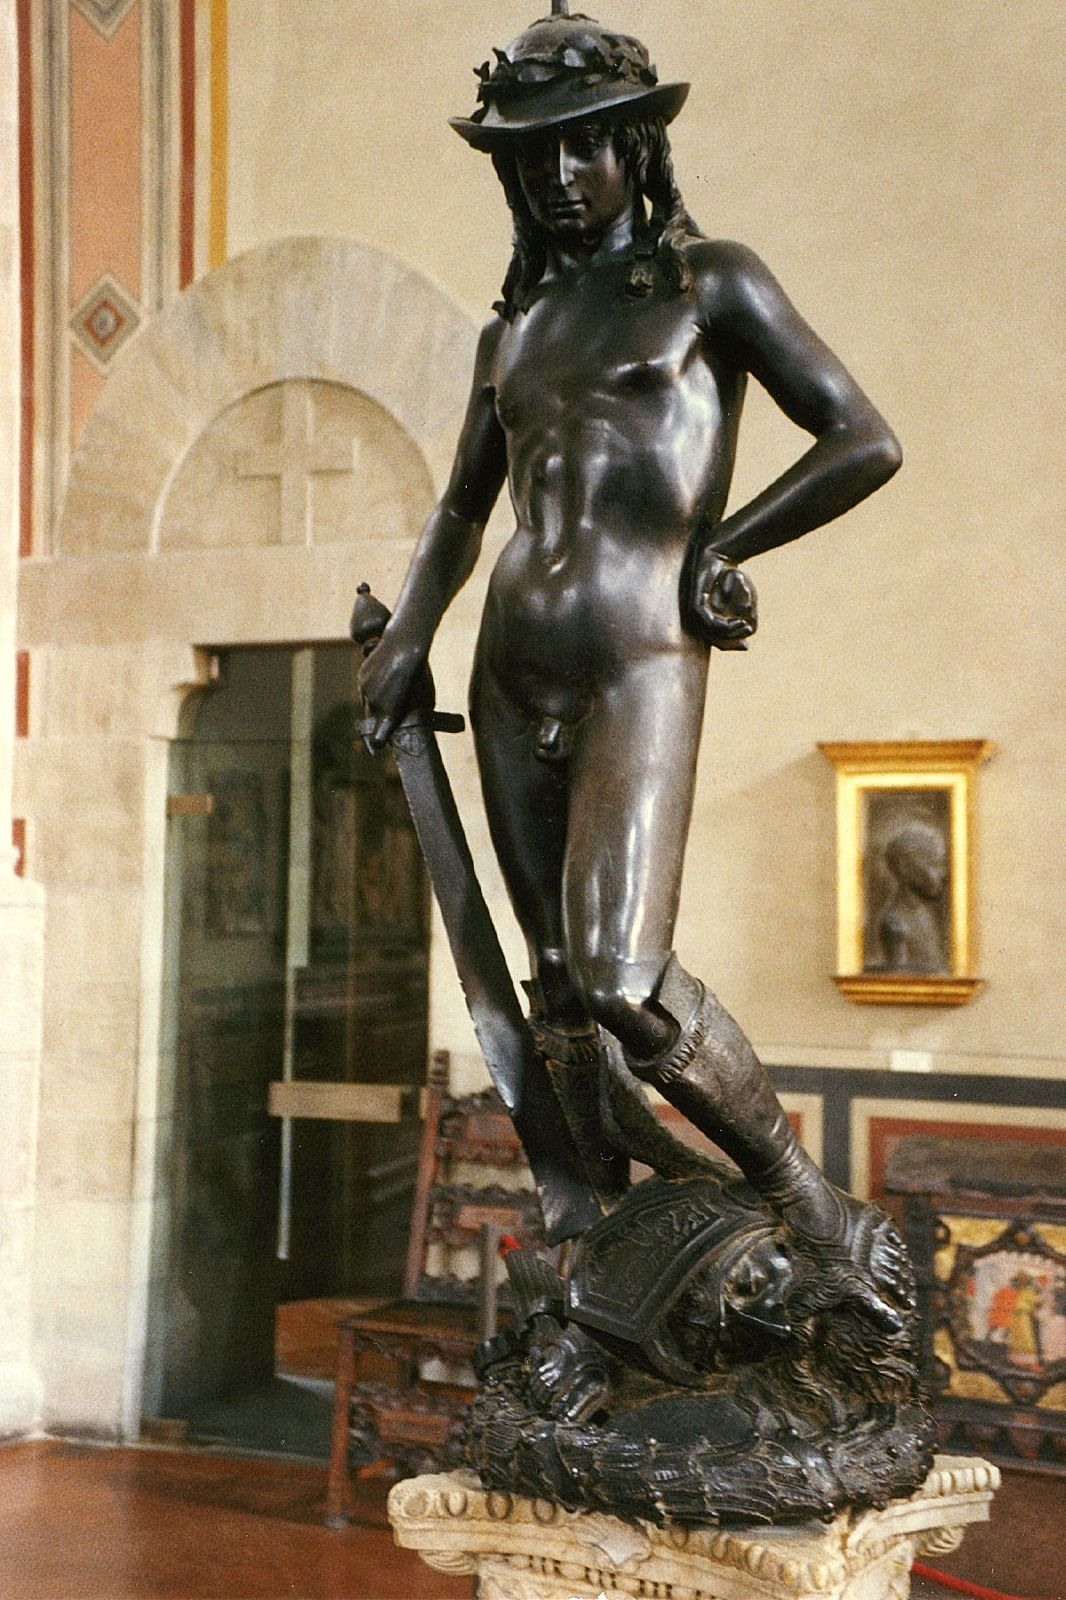 https://upload.wikimedia.org/wikipedia/commons/7/7f/Florence_-_David_by_Donatello.jpg